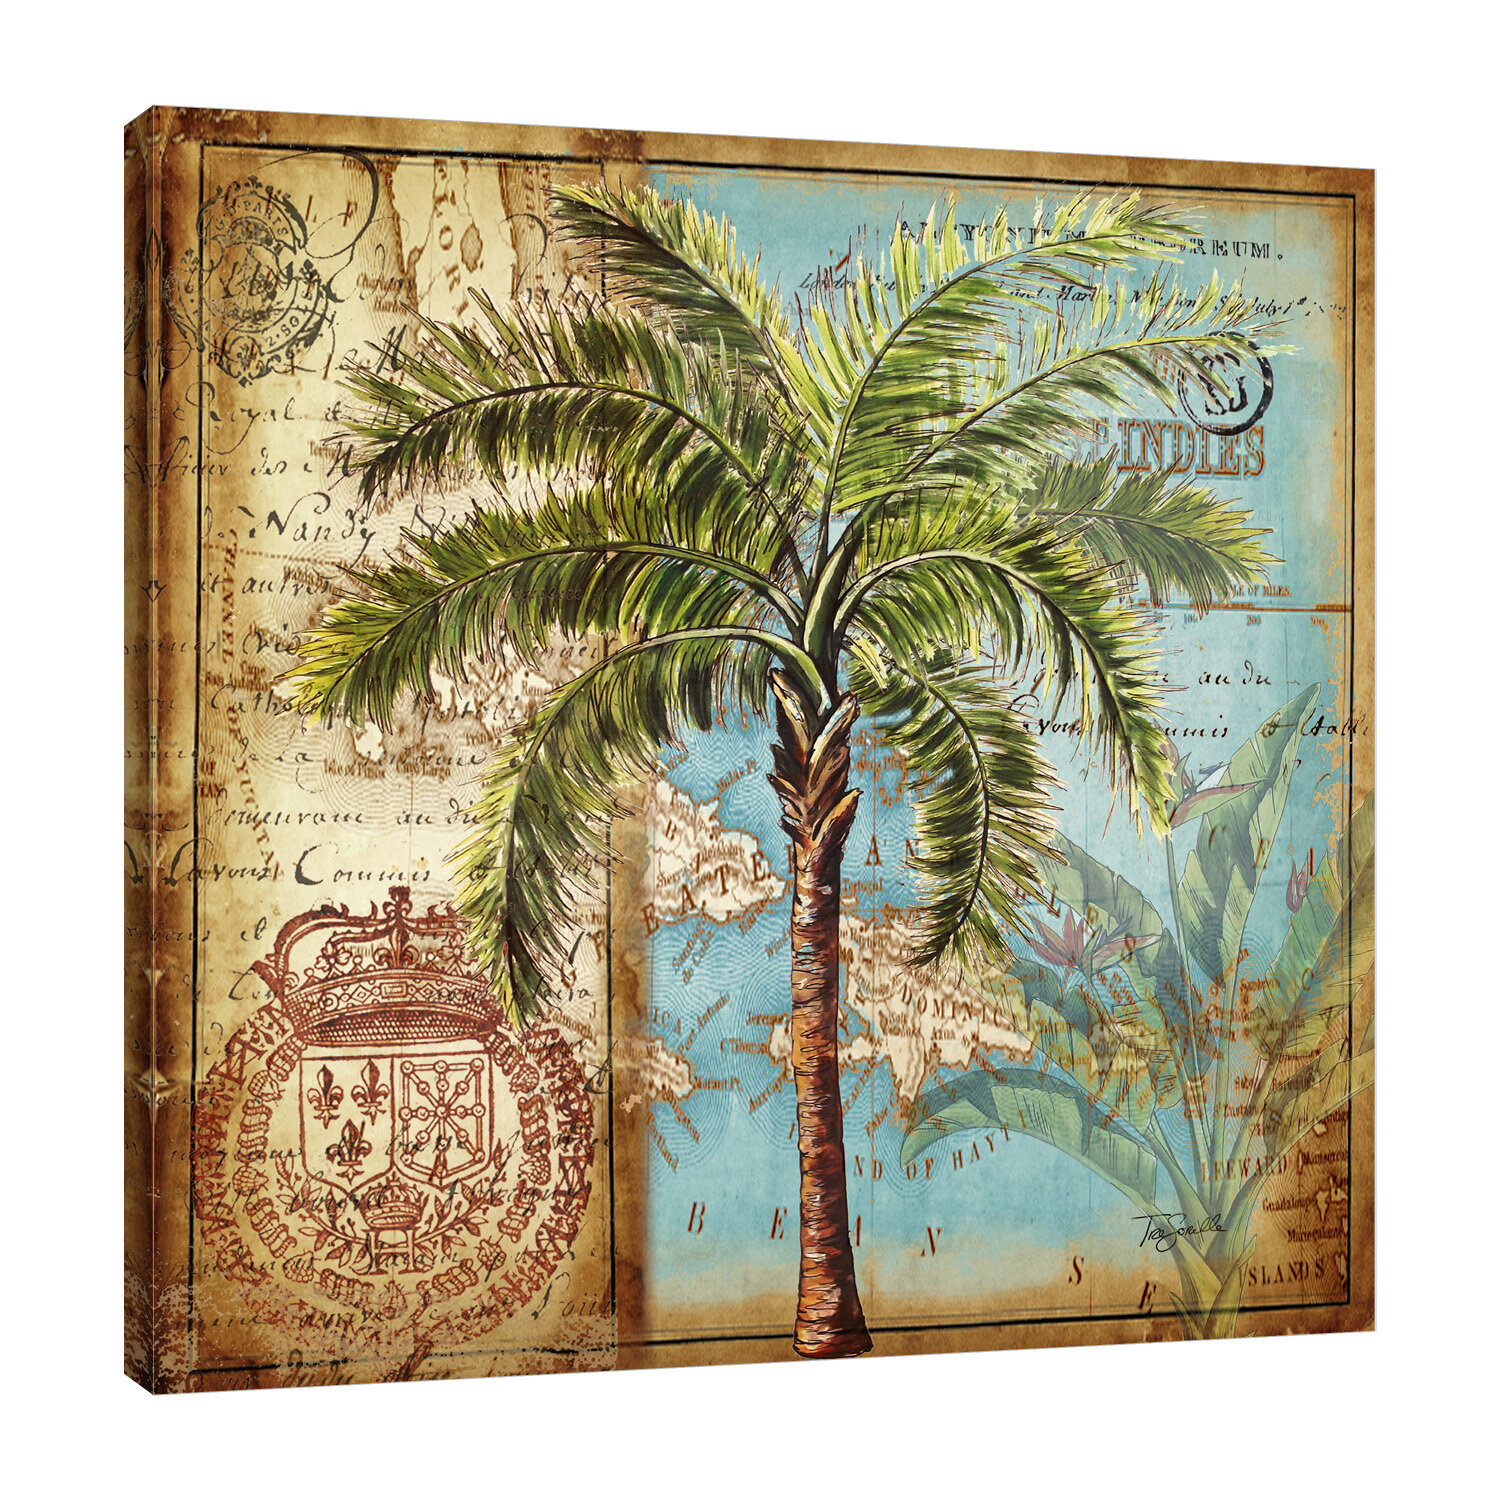 Bay Isle Home Antique Palm Tree Iii Graphic Art Print On Wrapped Canvas Reviews Wayfair